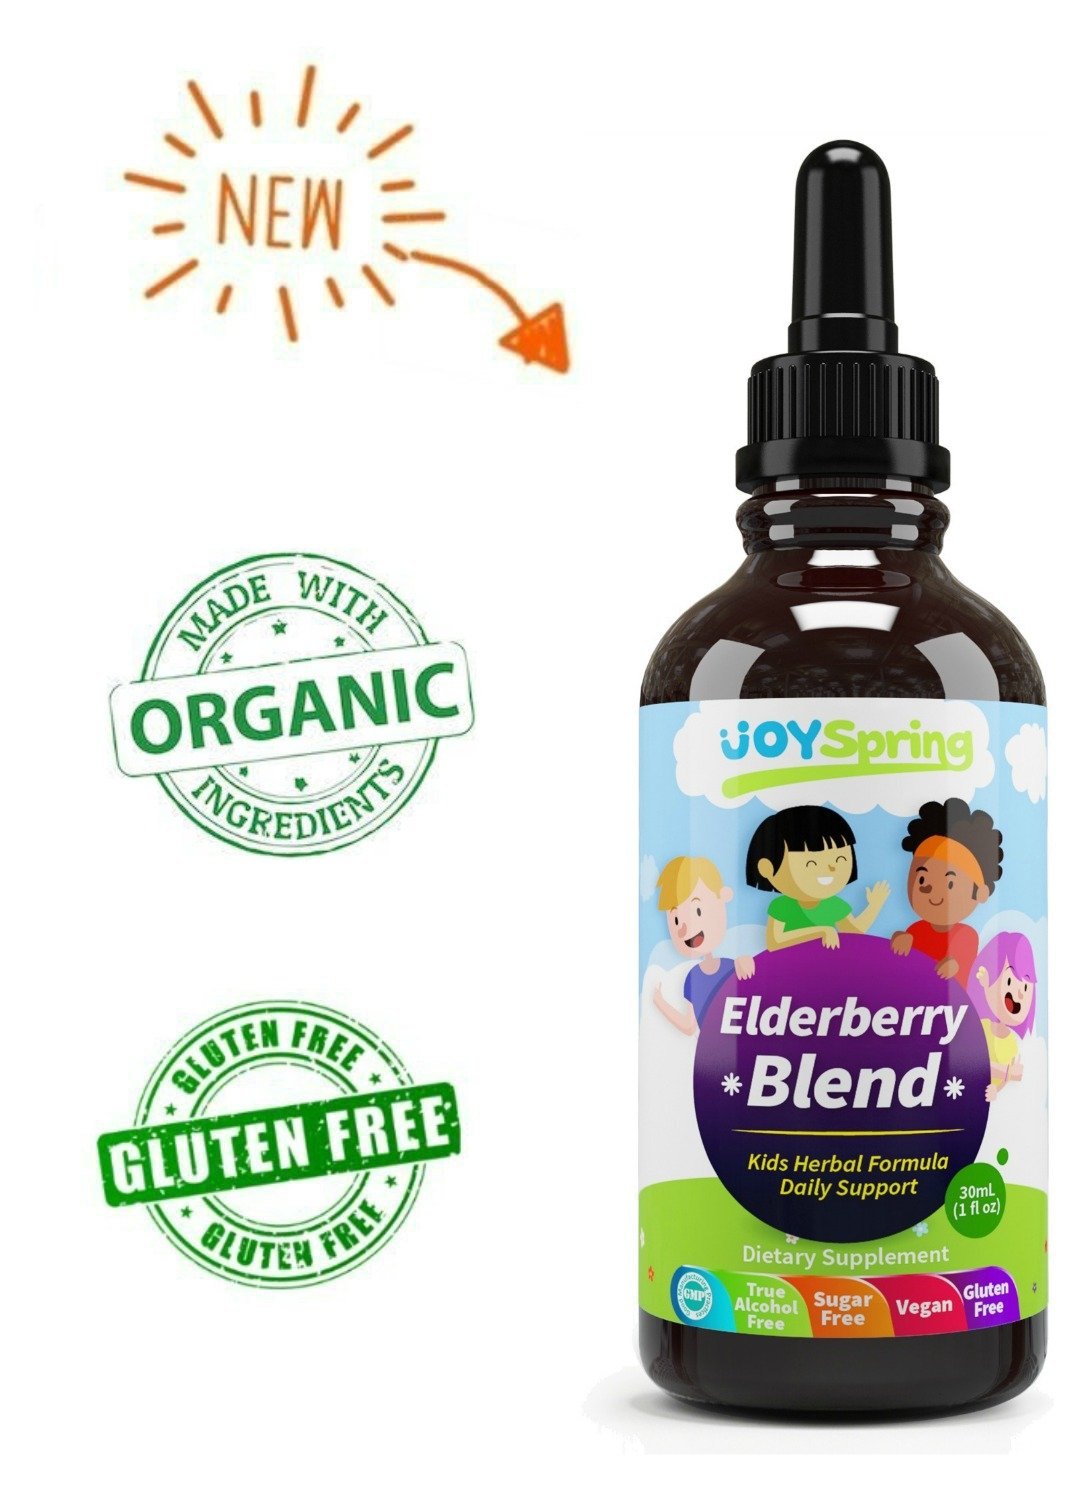 Organic Elderberry Syrup for Kids - Best Natural Kids Cold Medicine, Pure Elderberry Blend for Sickness Relief, 3X Stronger Vegan & Sugar-Free Formula to Strengthen Immune System by JoySpring